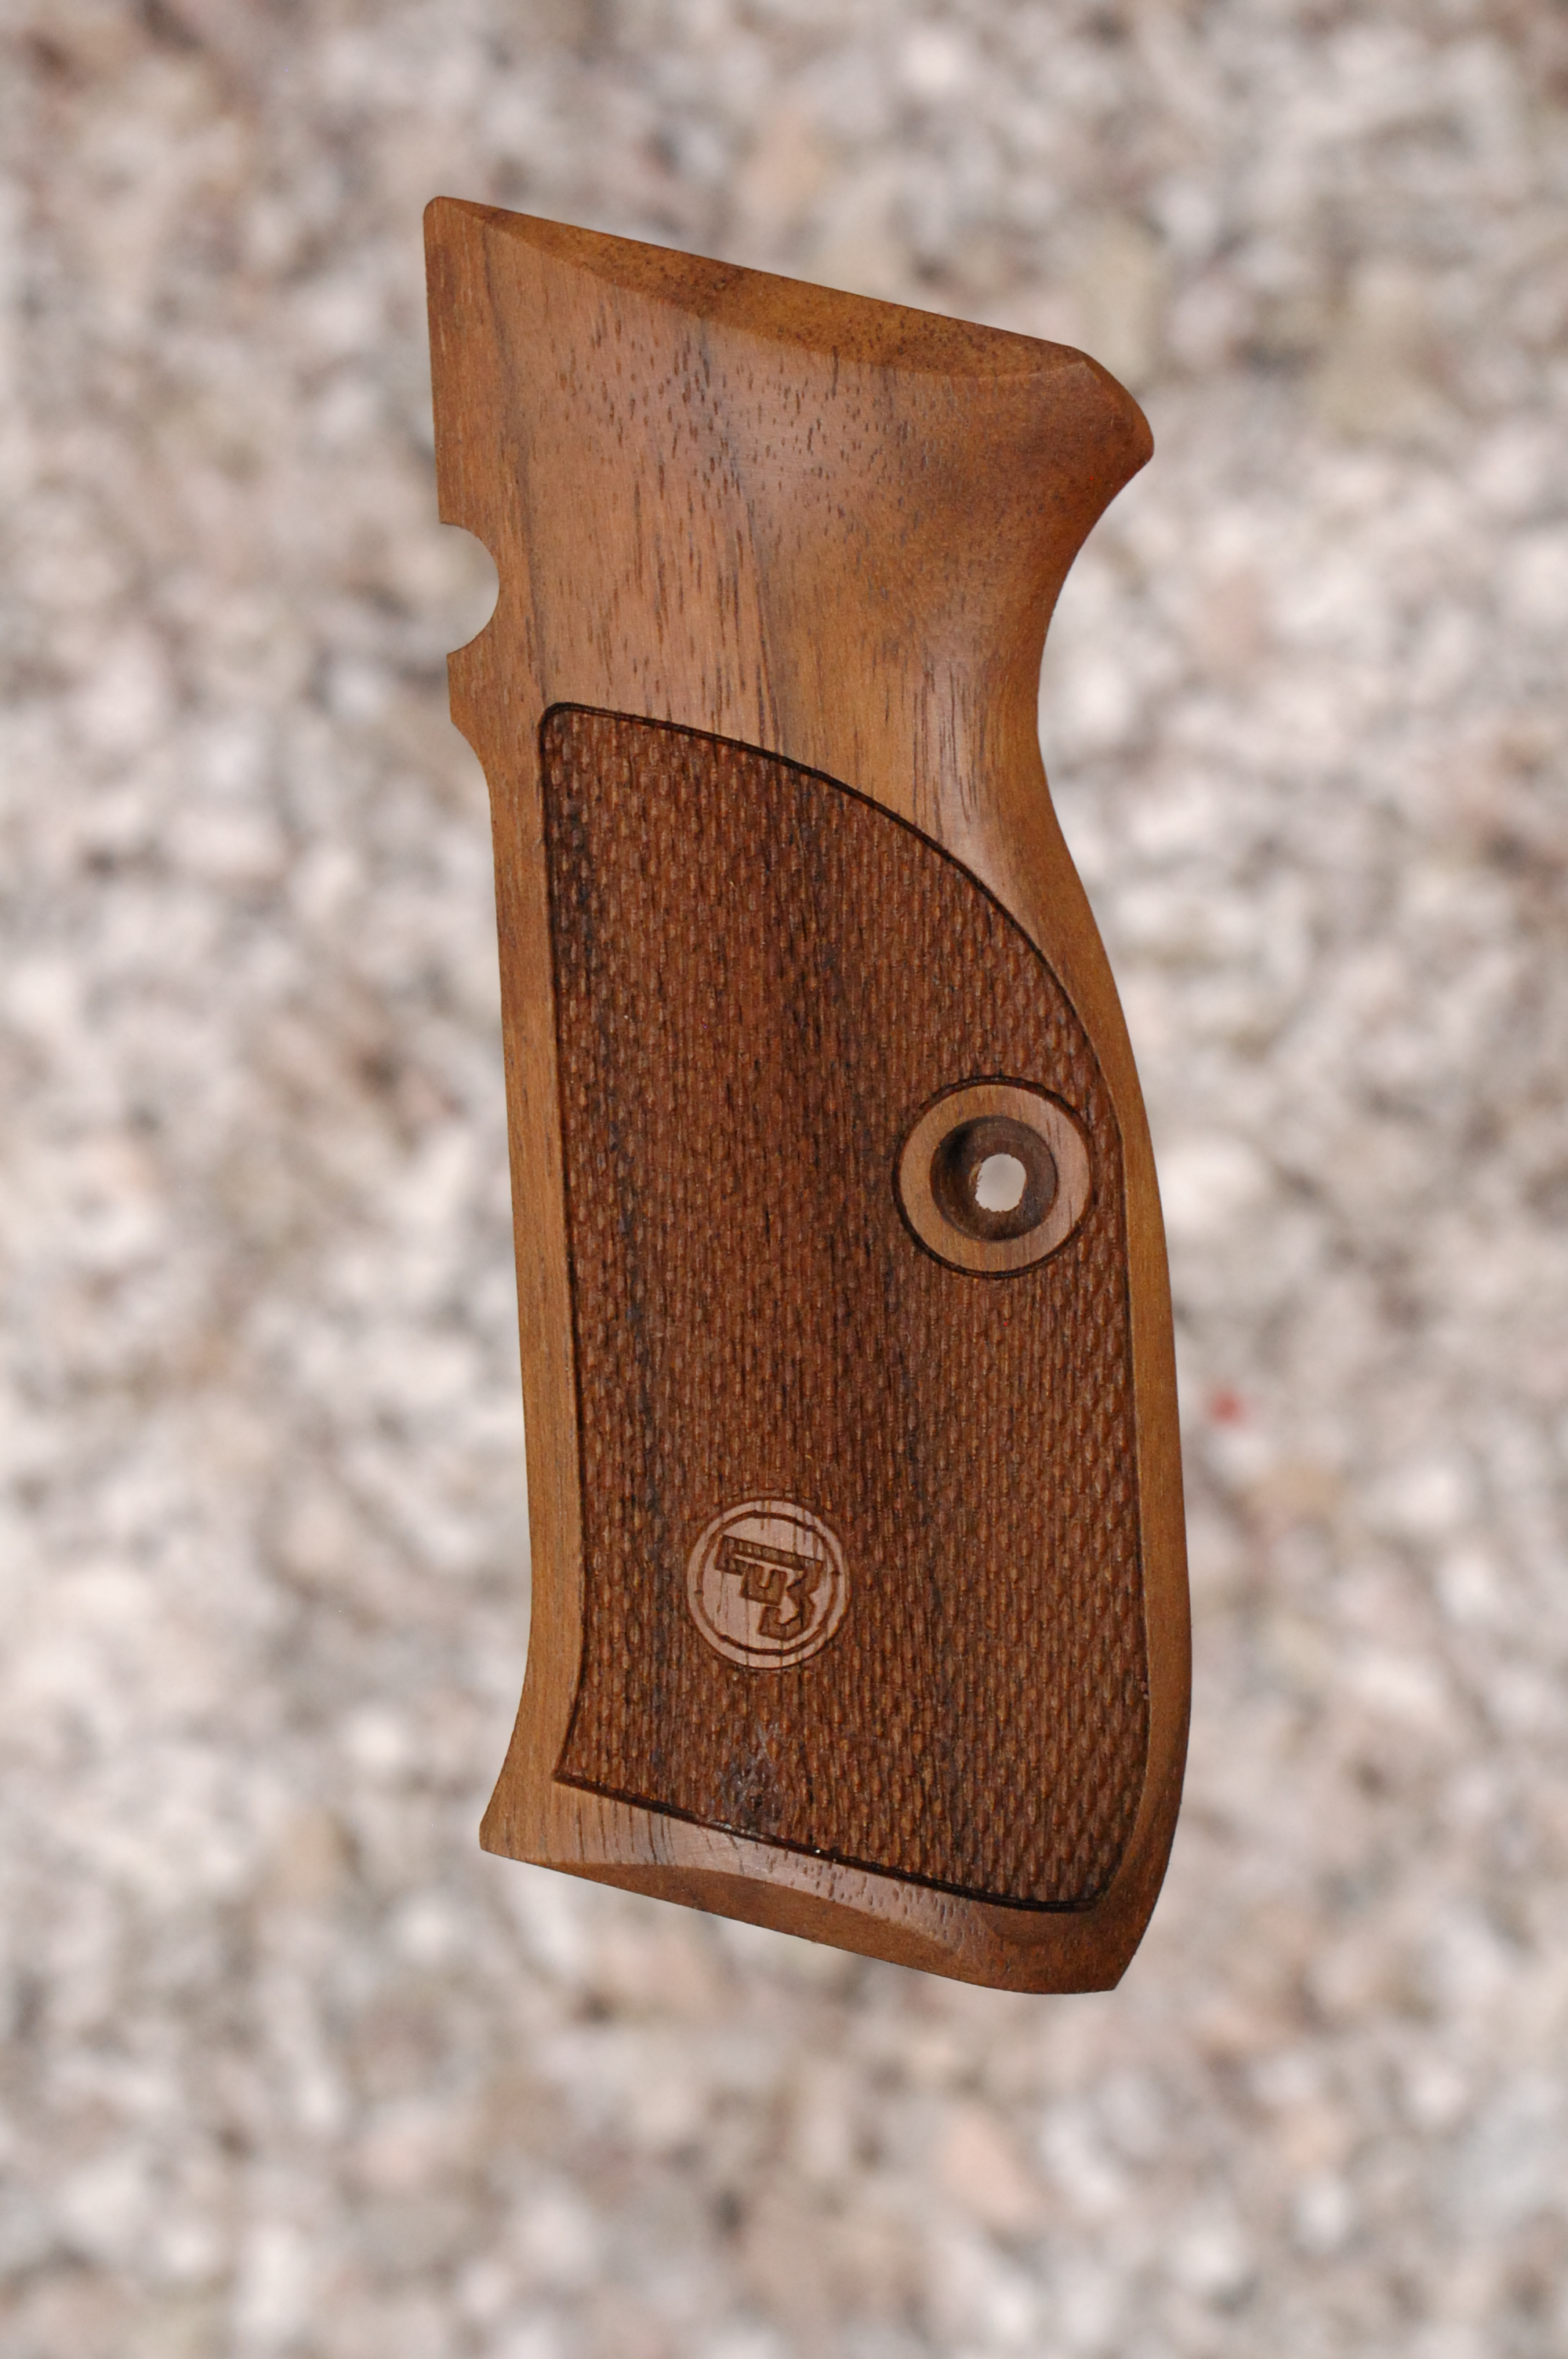 CZ 75 GRIPS type 5 (checkered) - full size